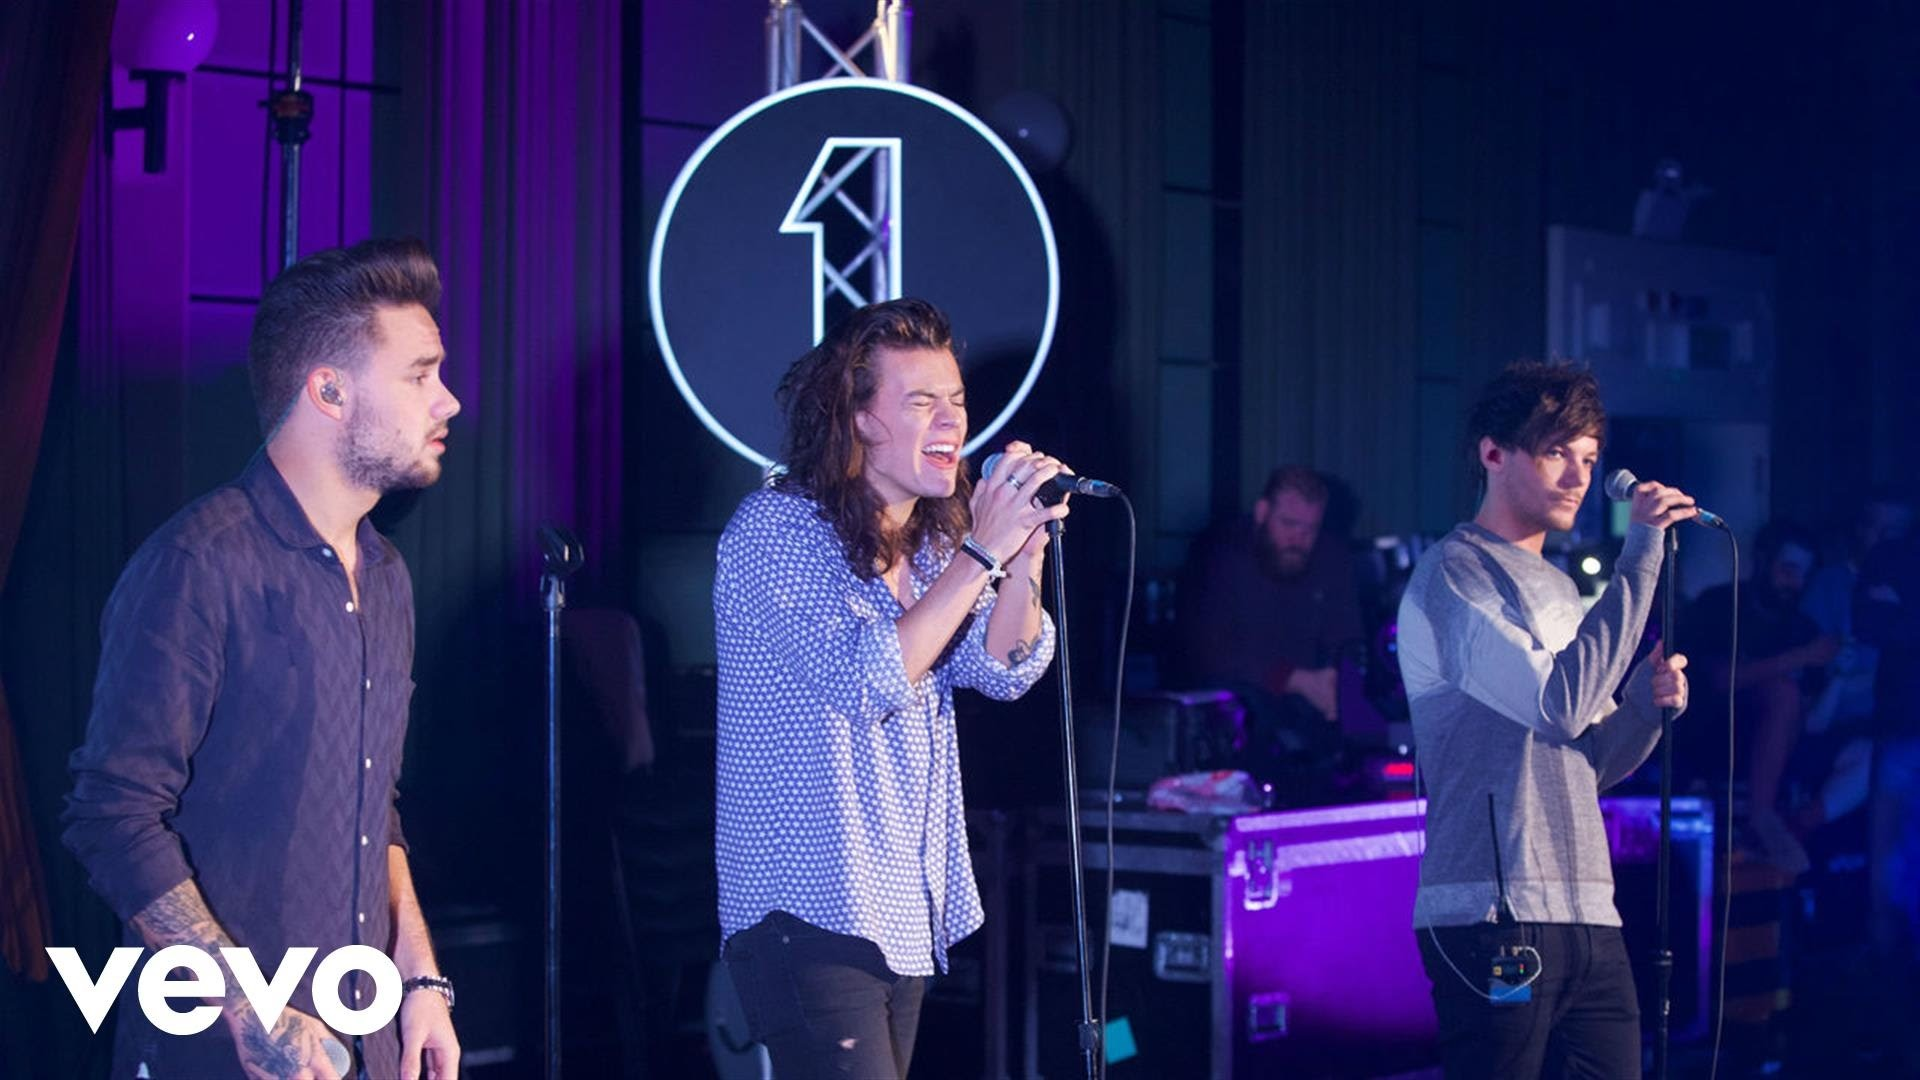 One Direction – Torn (Natalie Imbruglia cover in the Live Lounge) – YouTube